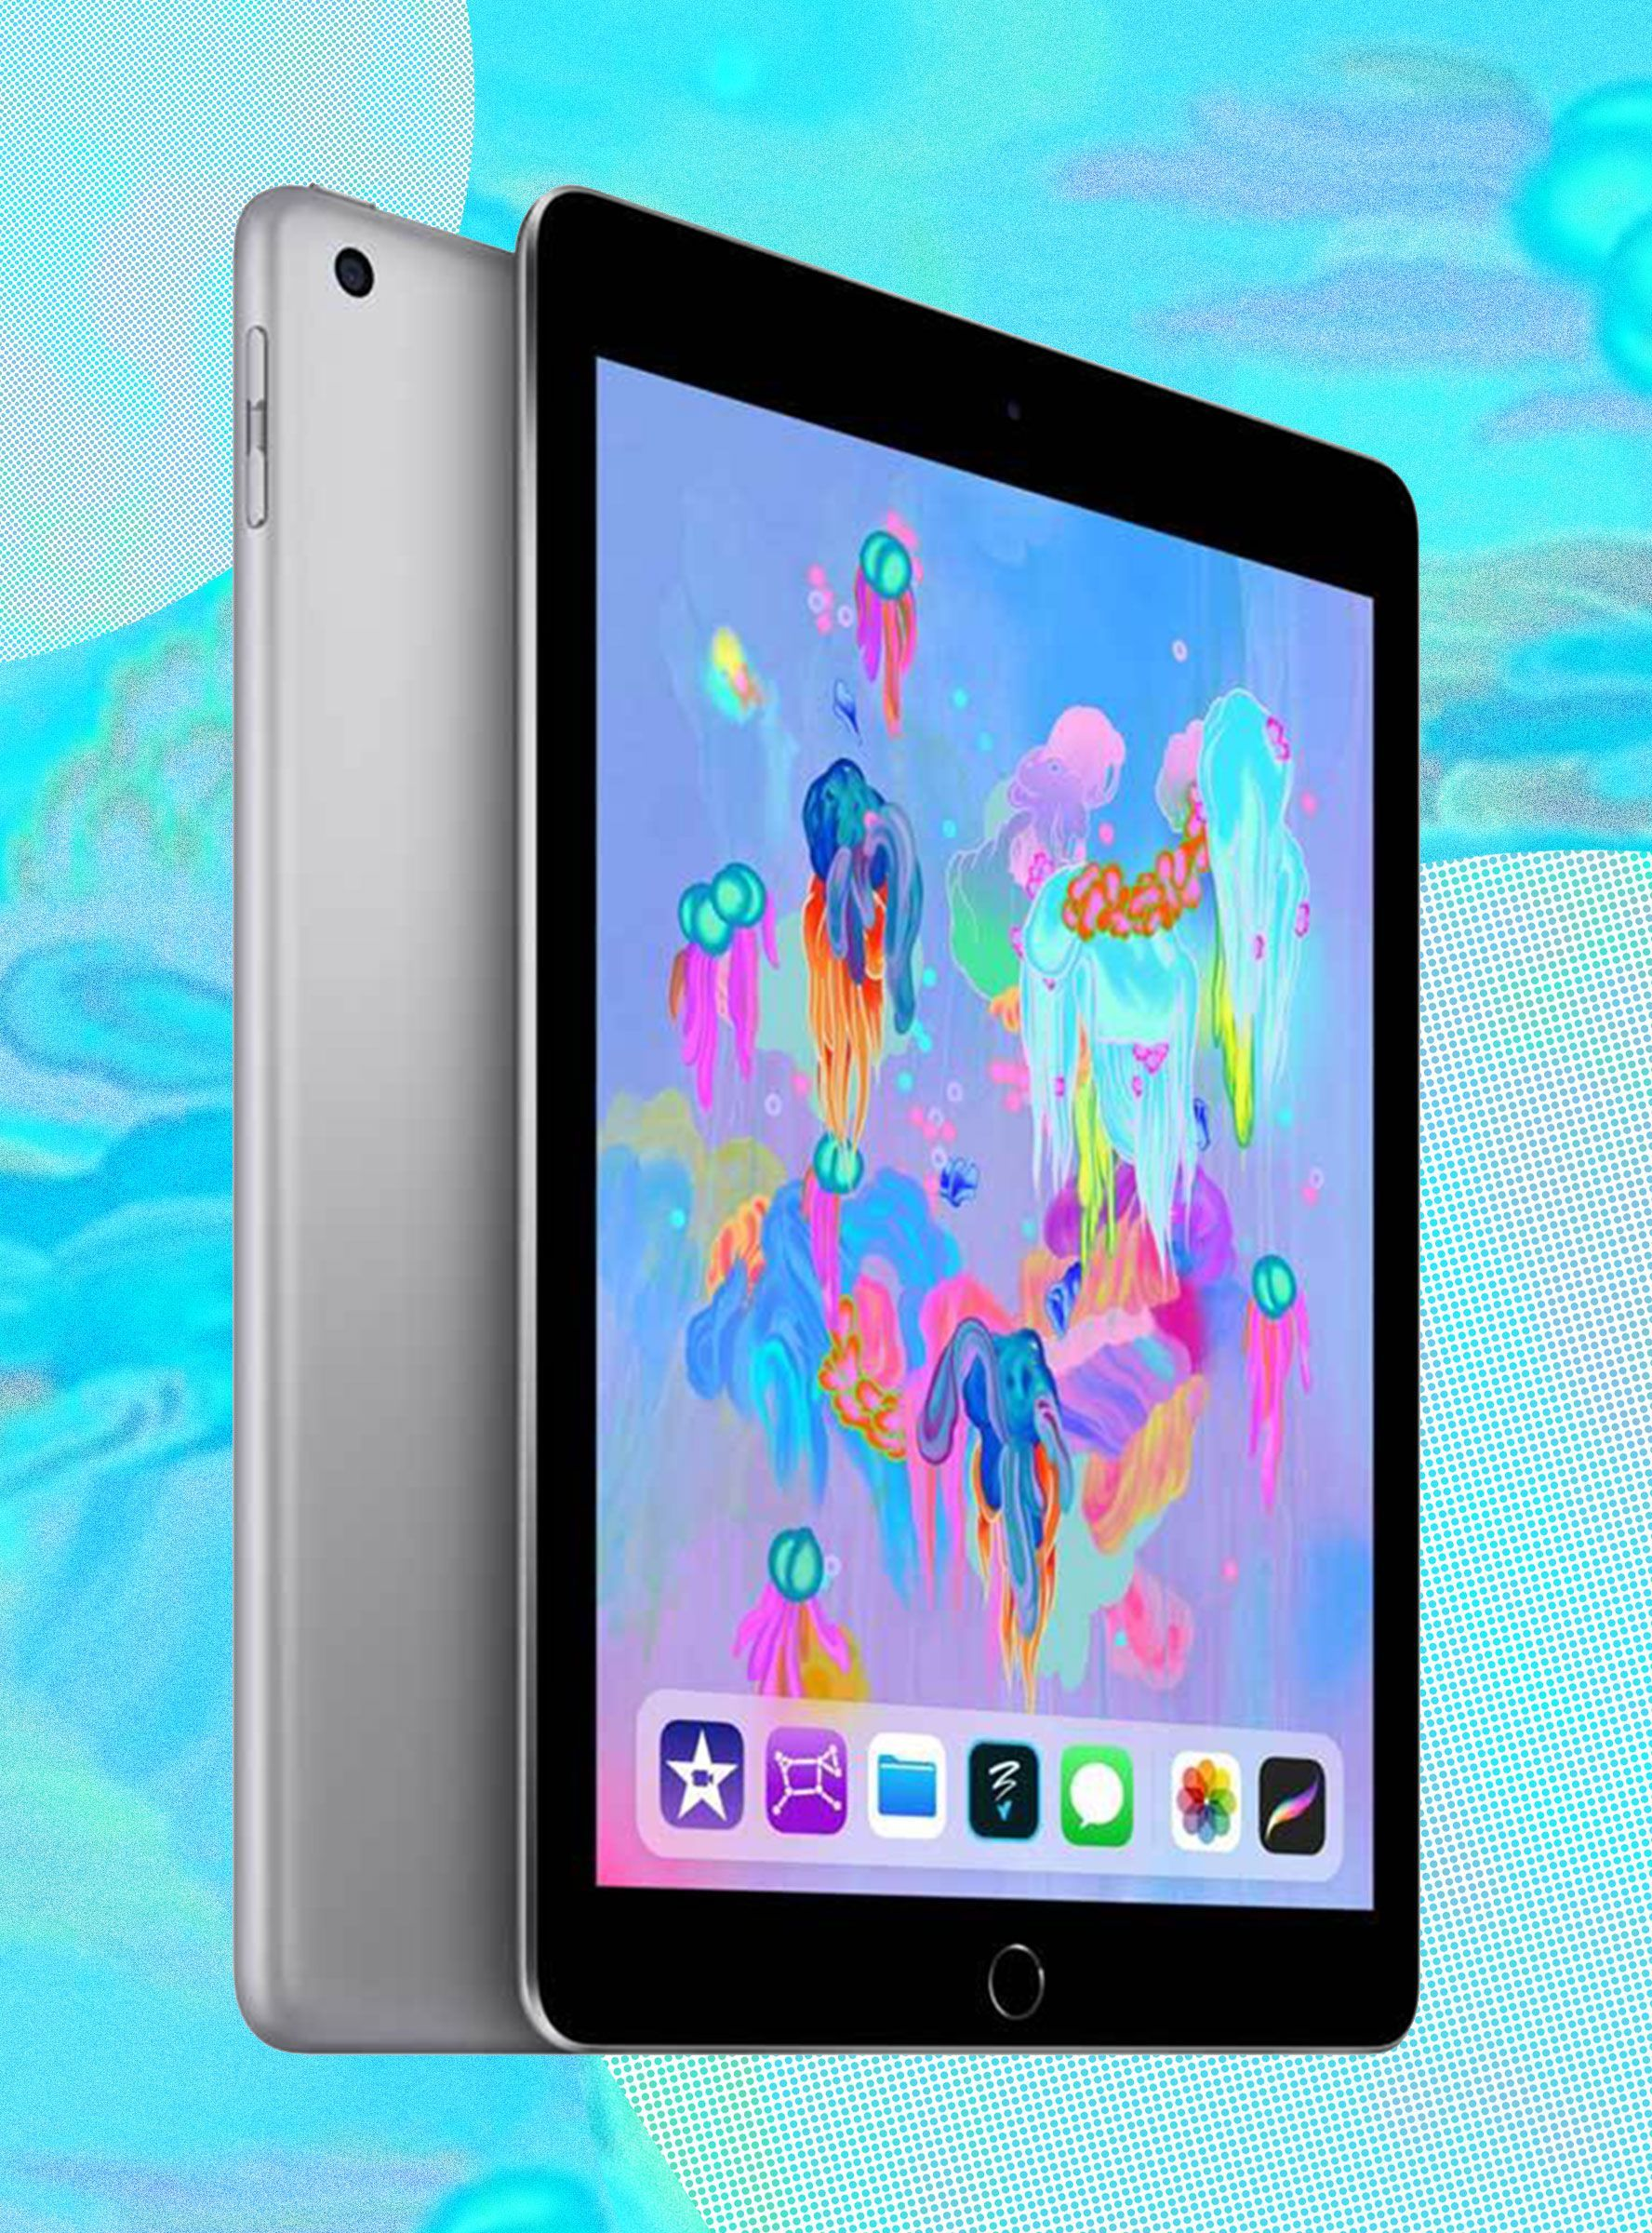 Labor Day Tech Deals Are The Best We'll See Until Black